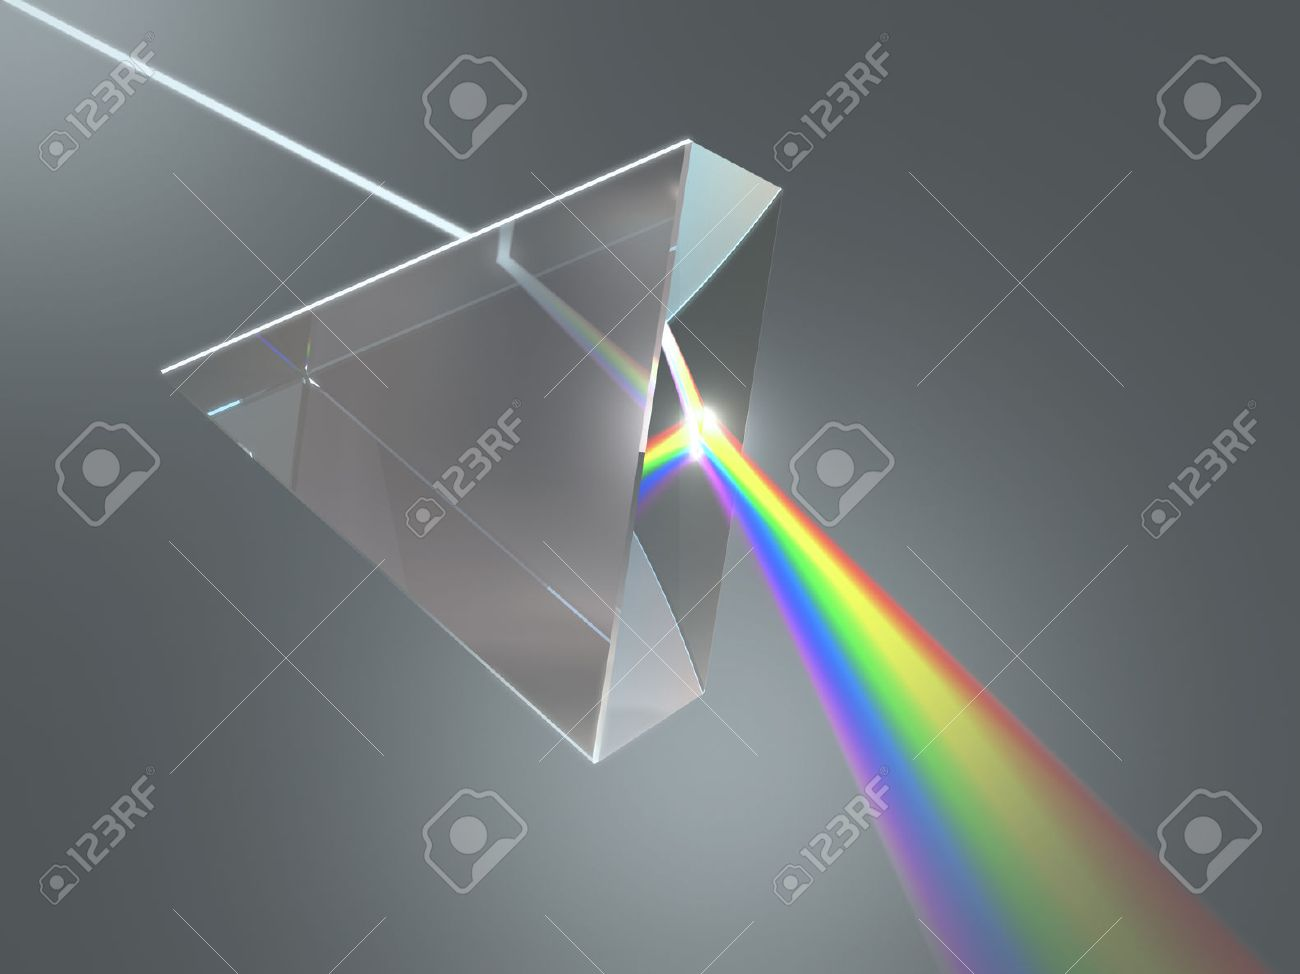 The crystal prism disperses white light into many colors. - 29284464